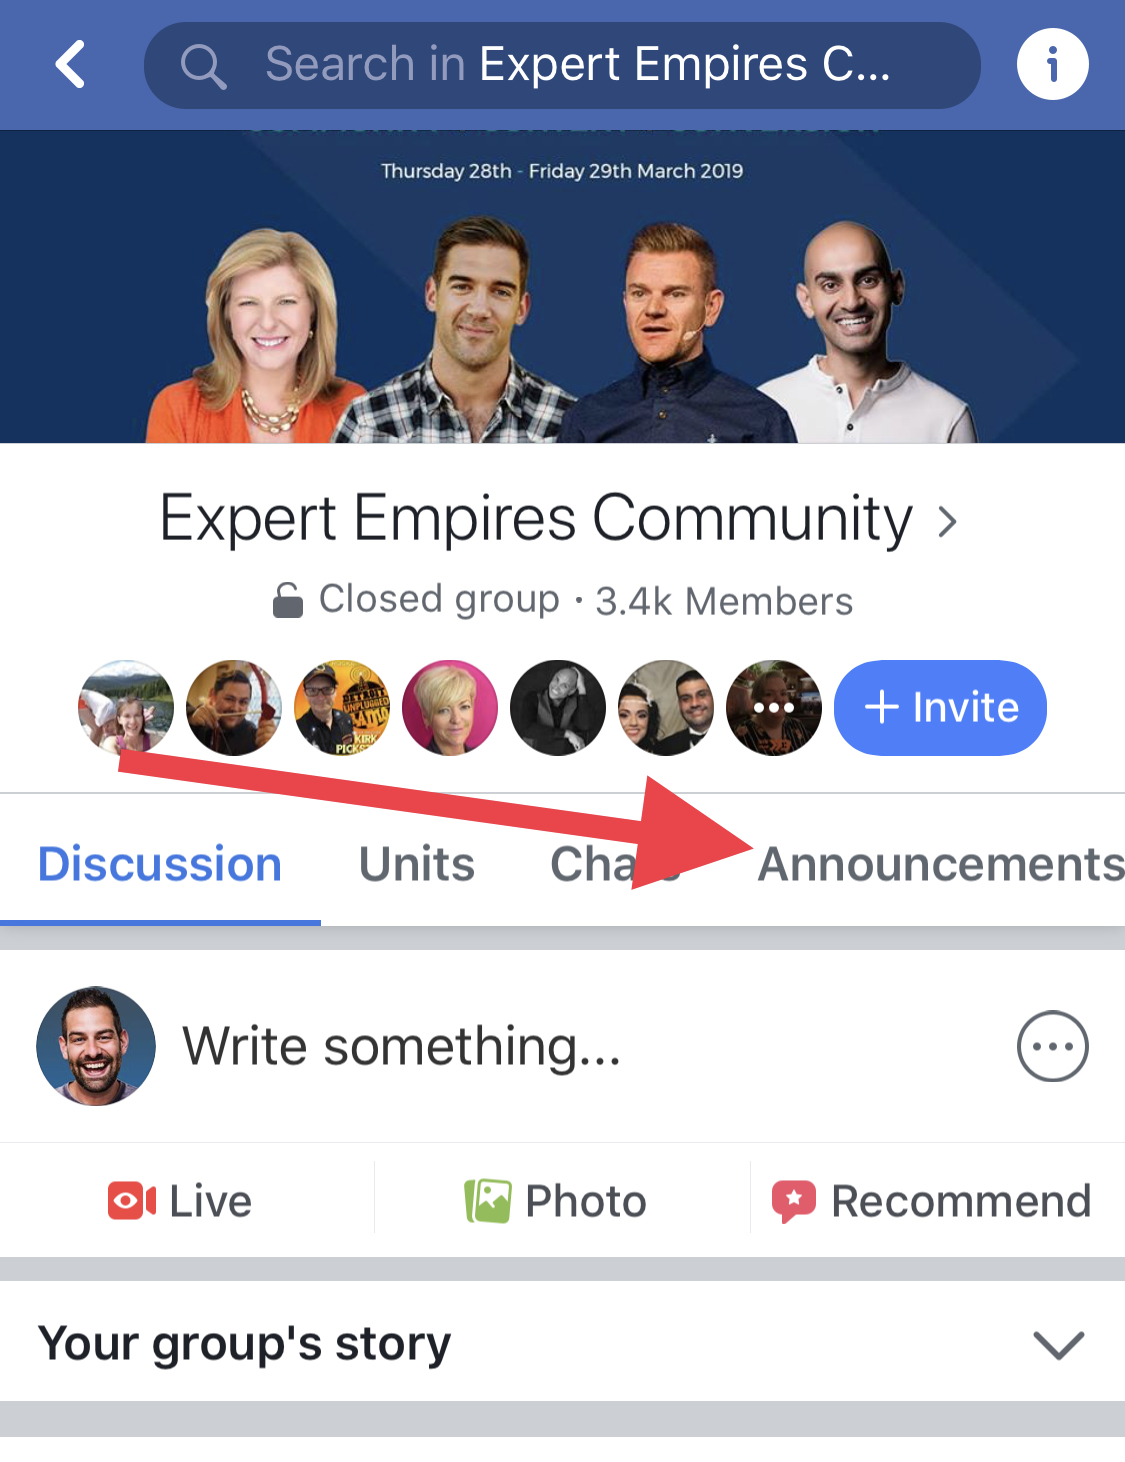 Finding announcements in a Facebook groupq